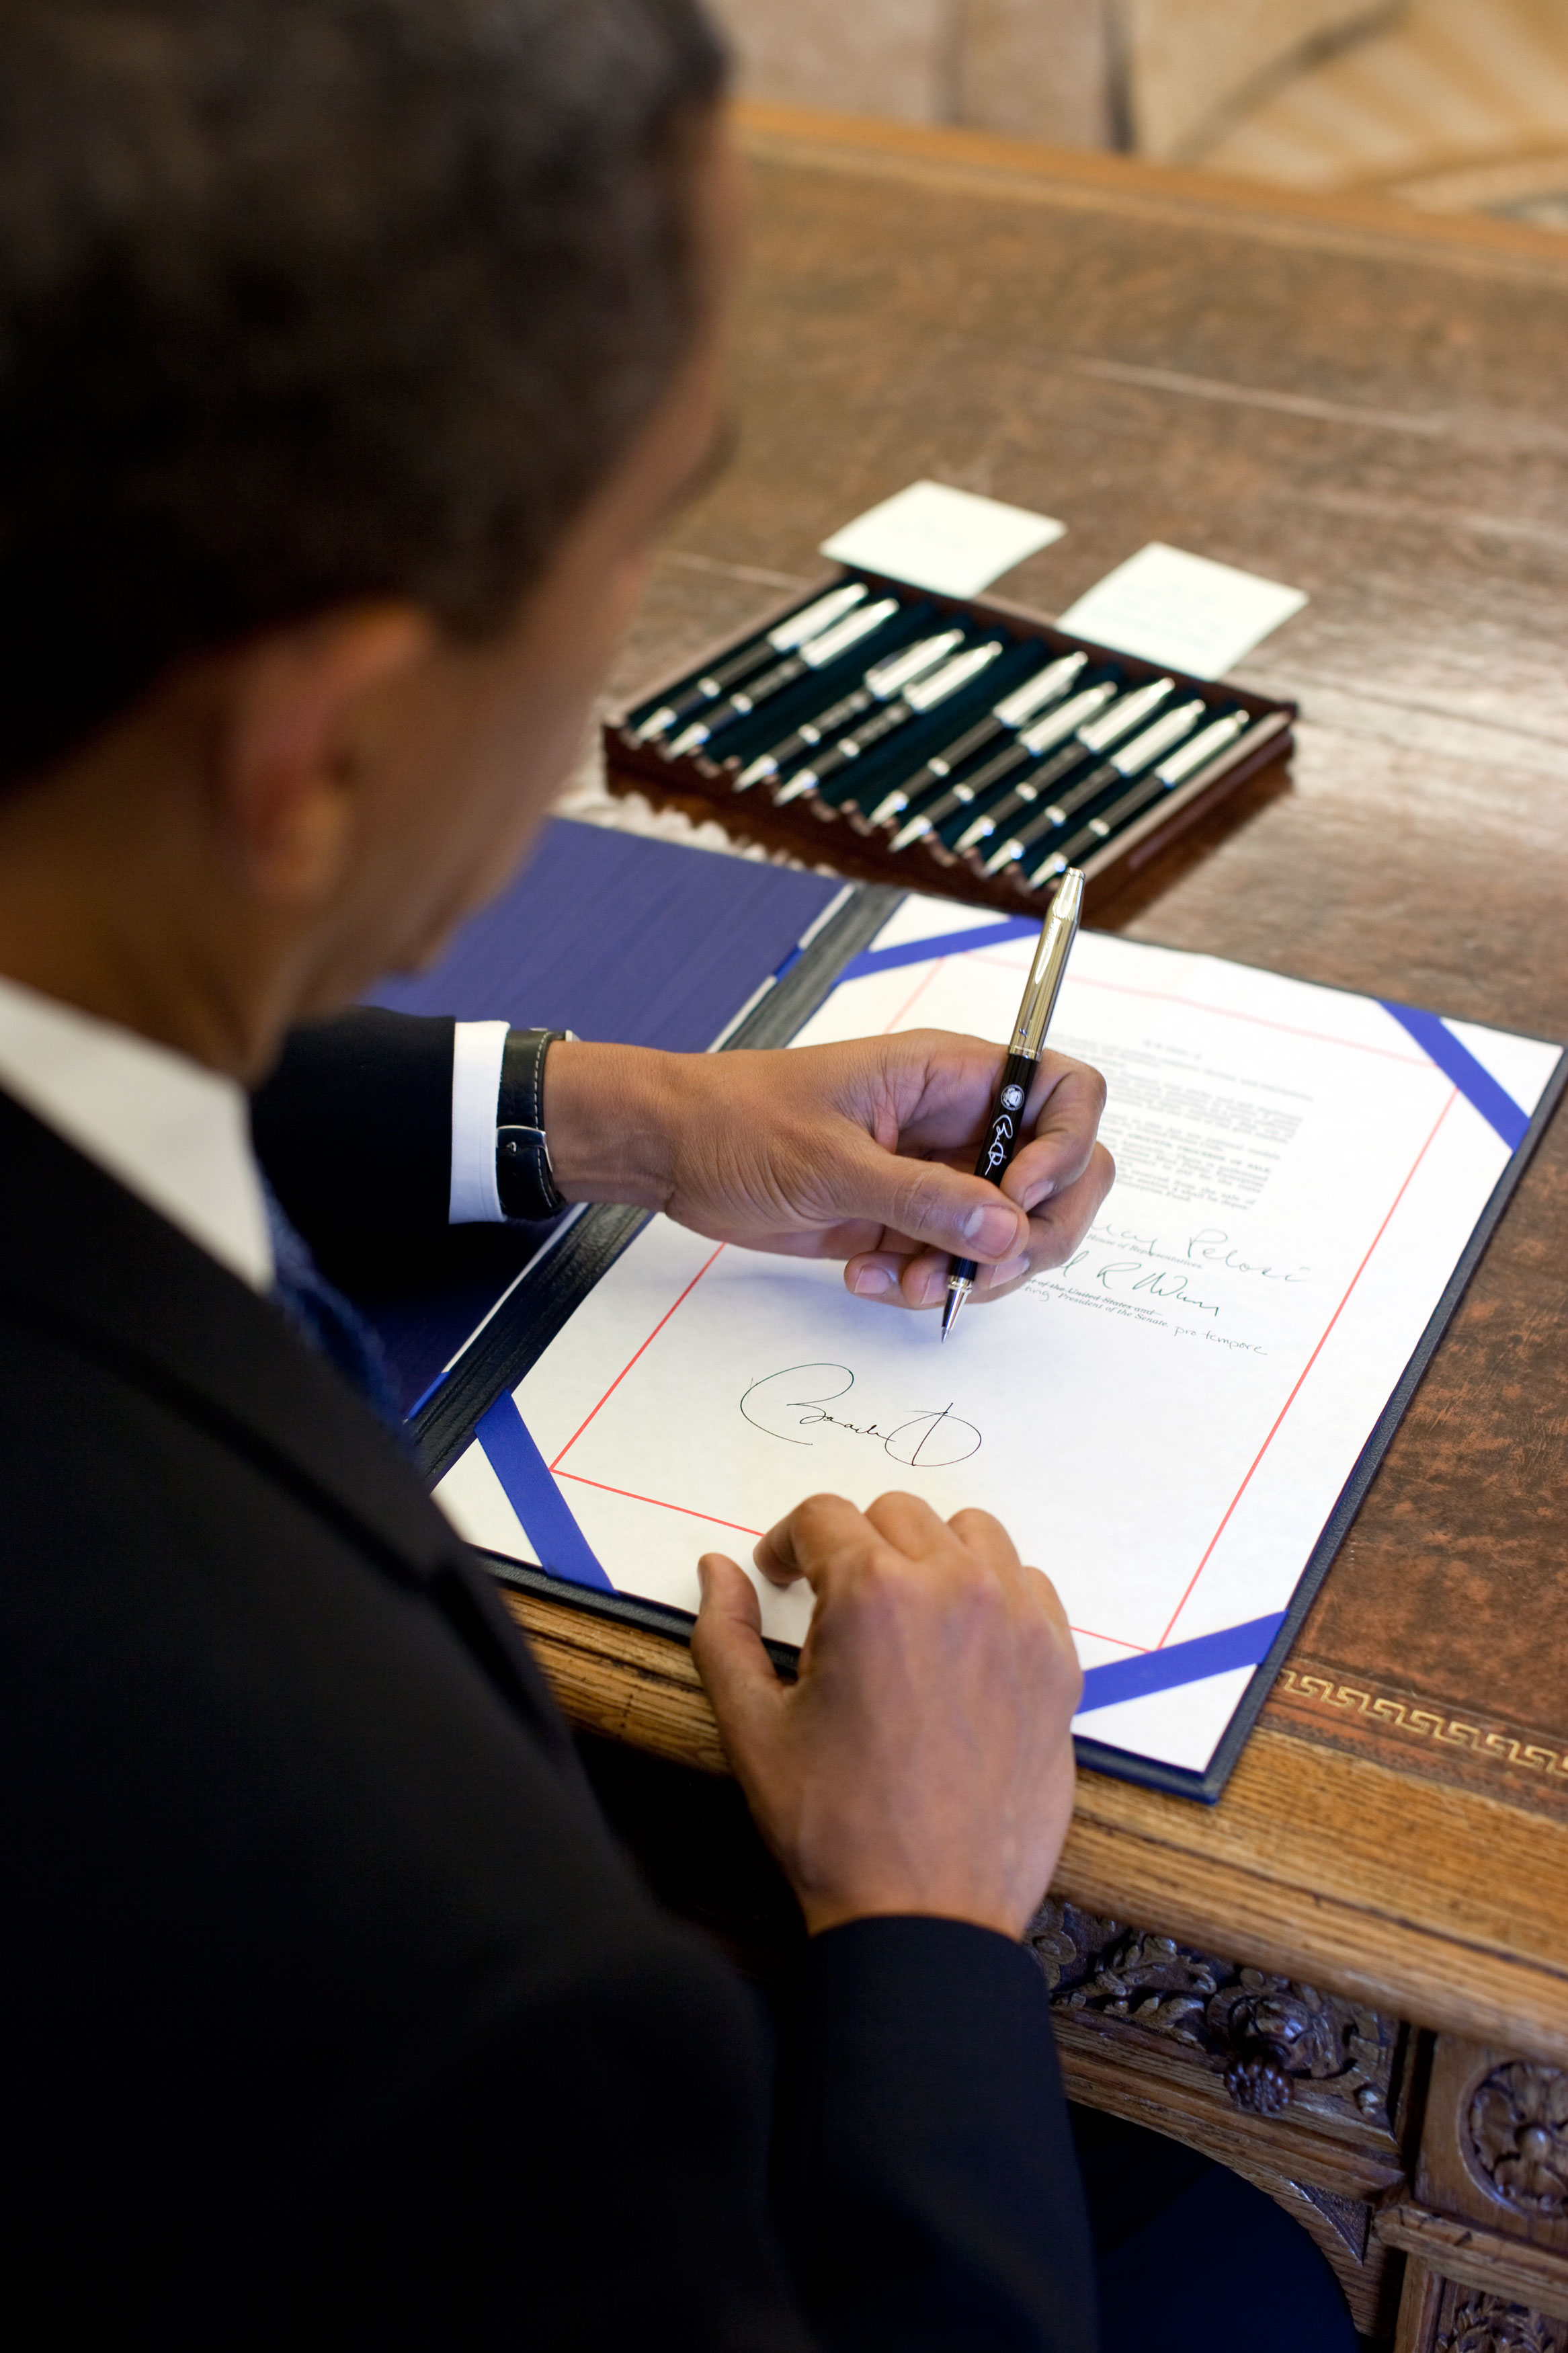 A shot over President Obama's right shoulder showing his signature after he has signed a bill into law.